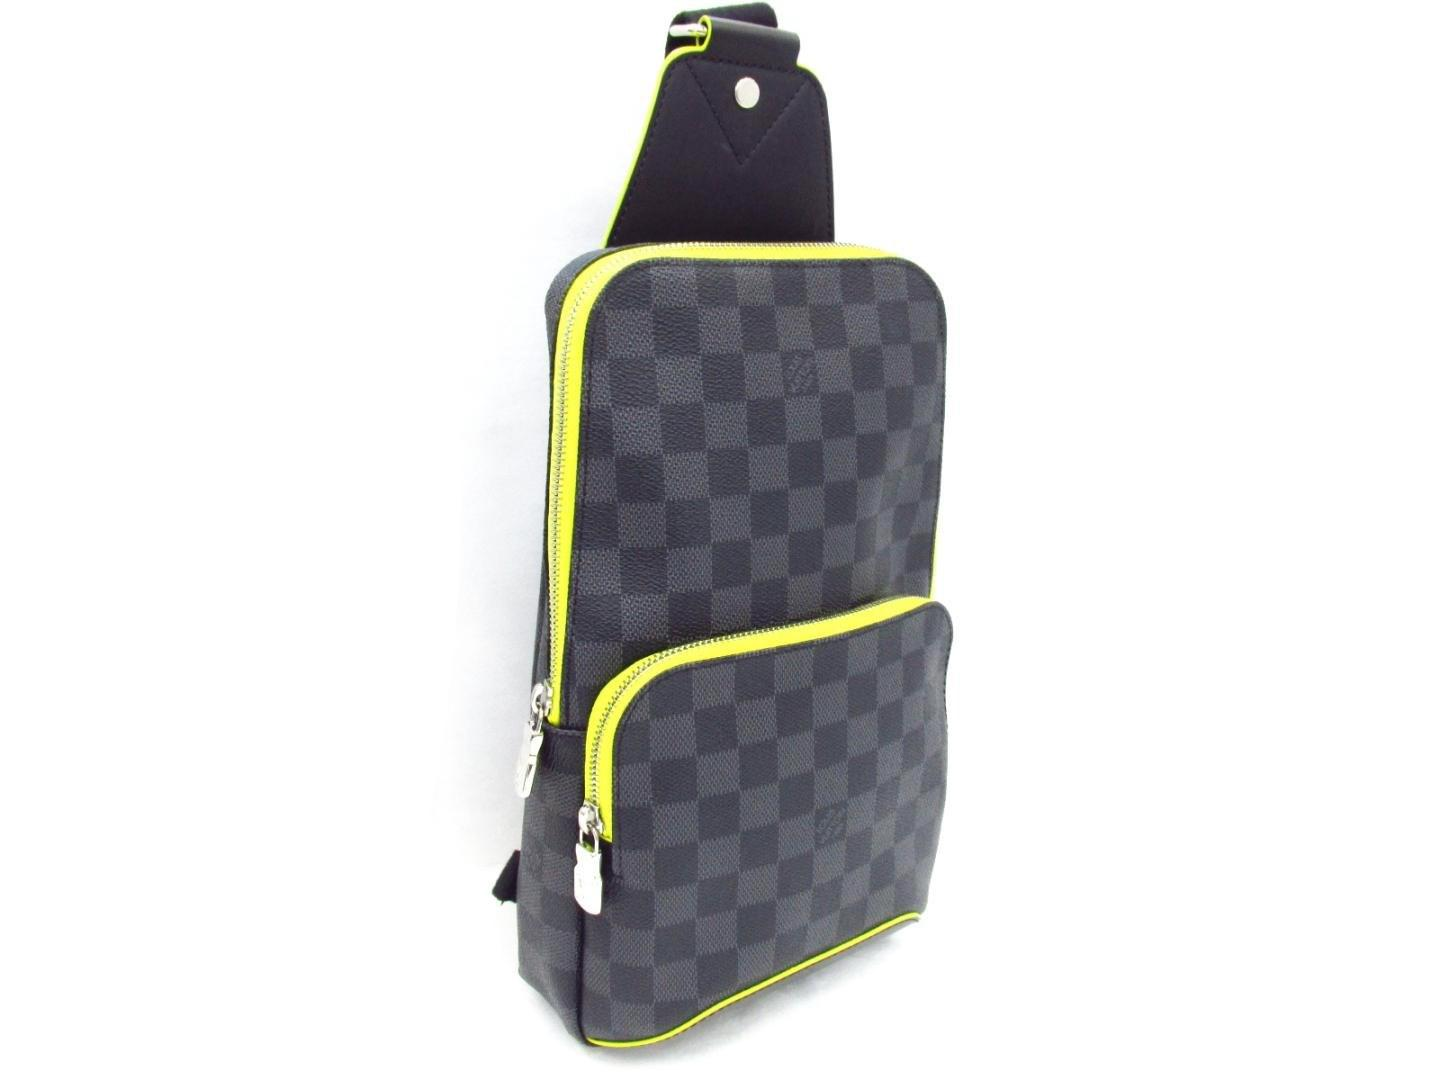 6ade25929 Louis Vuitton Avenue Sling Body Bag N42424 Damier Graphite/leather ...